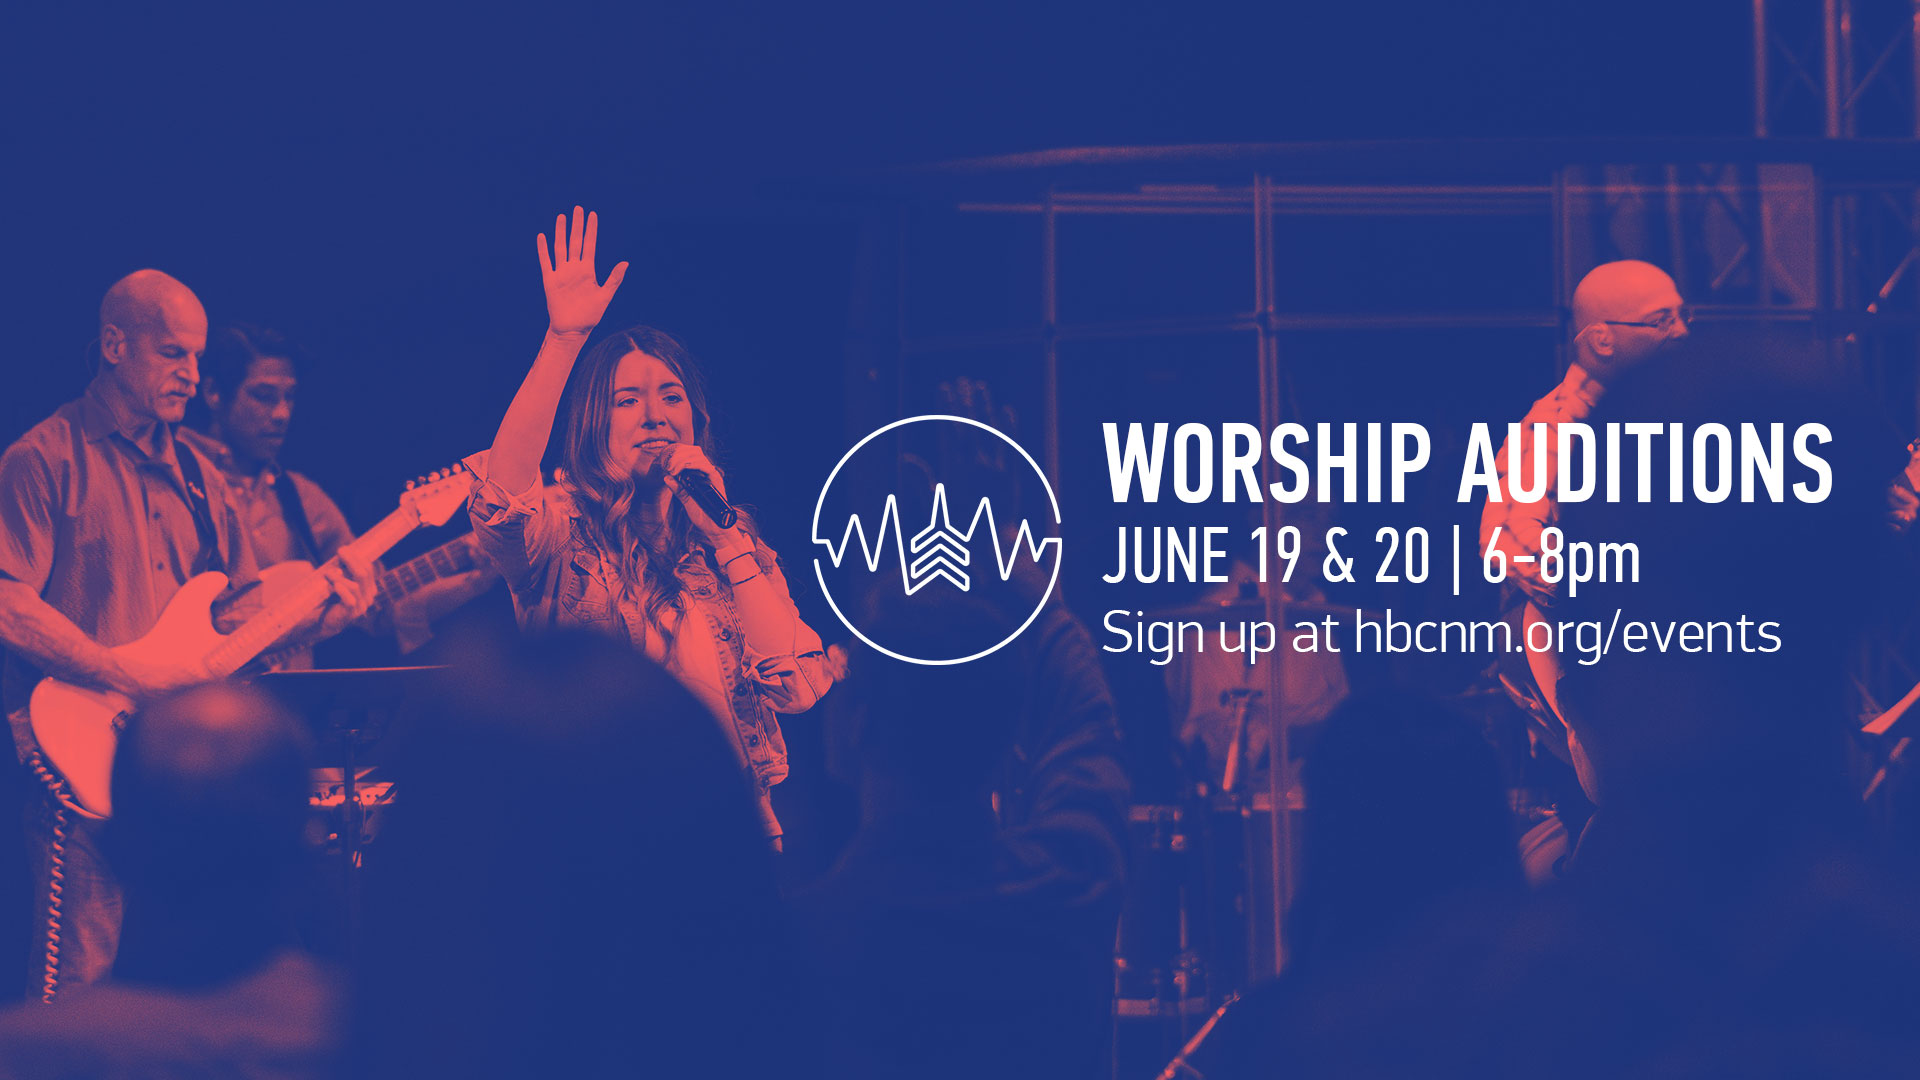 Worship-Auditions-June-2019.jpg